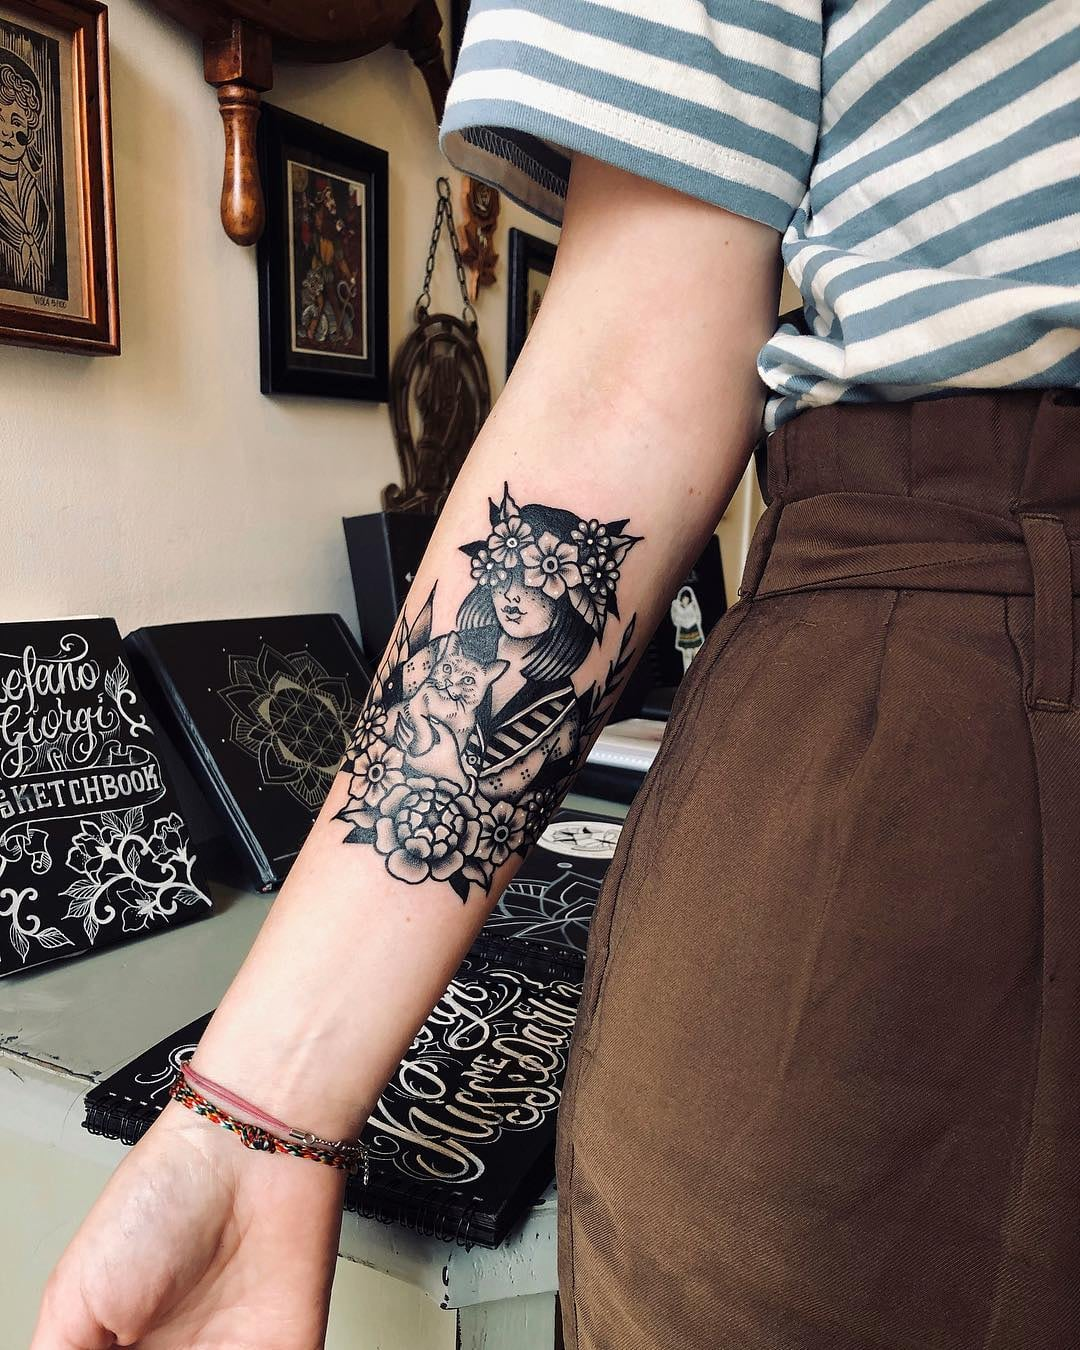 50 cool arm tattoos design ideas for men and women ▷ Legit.ng